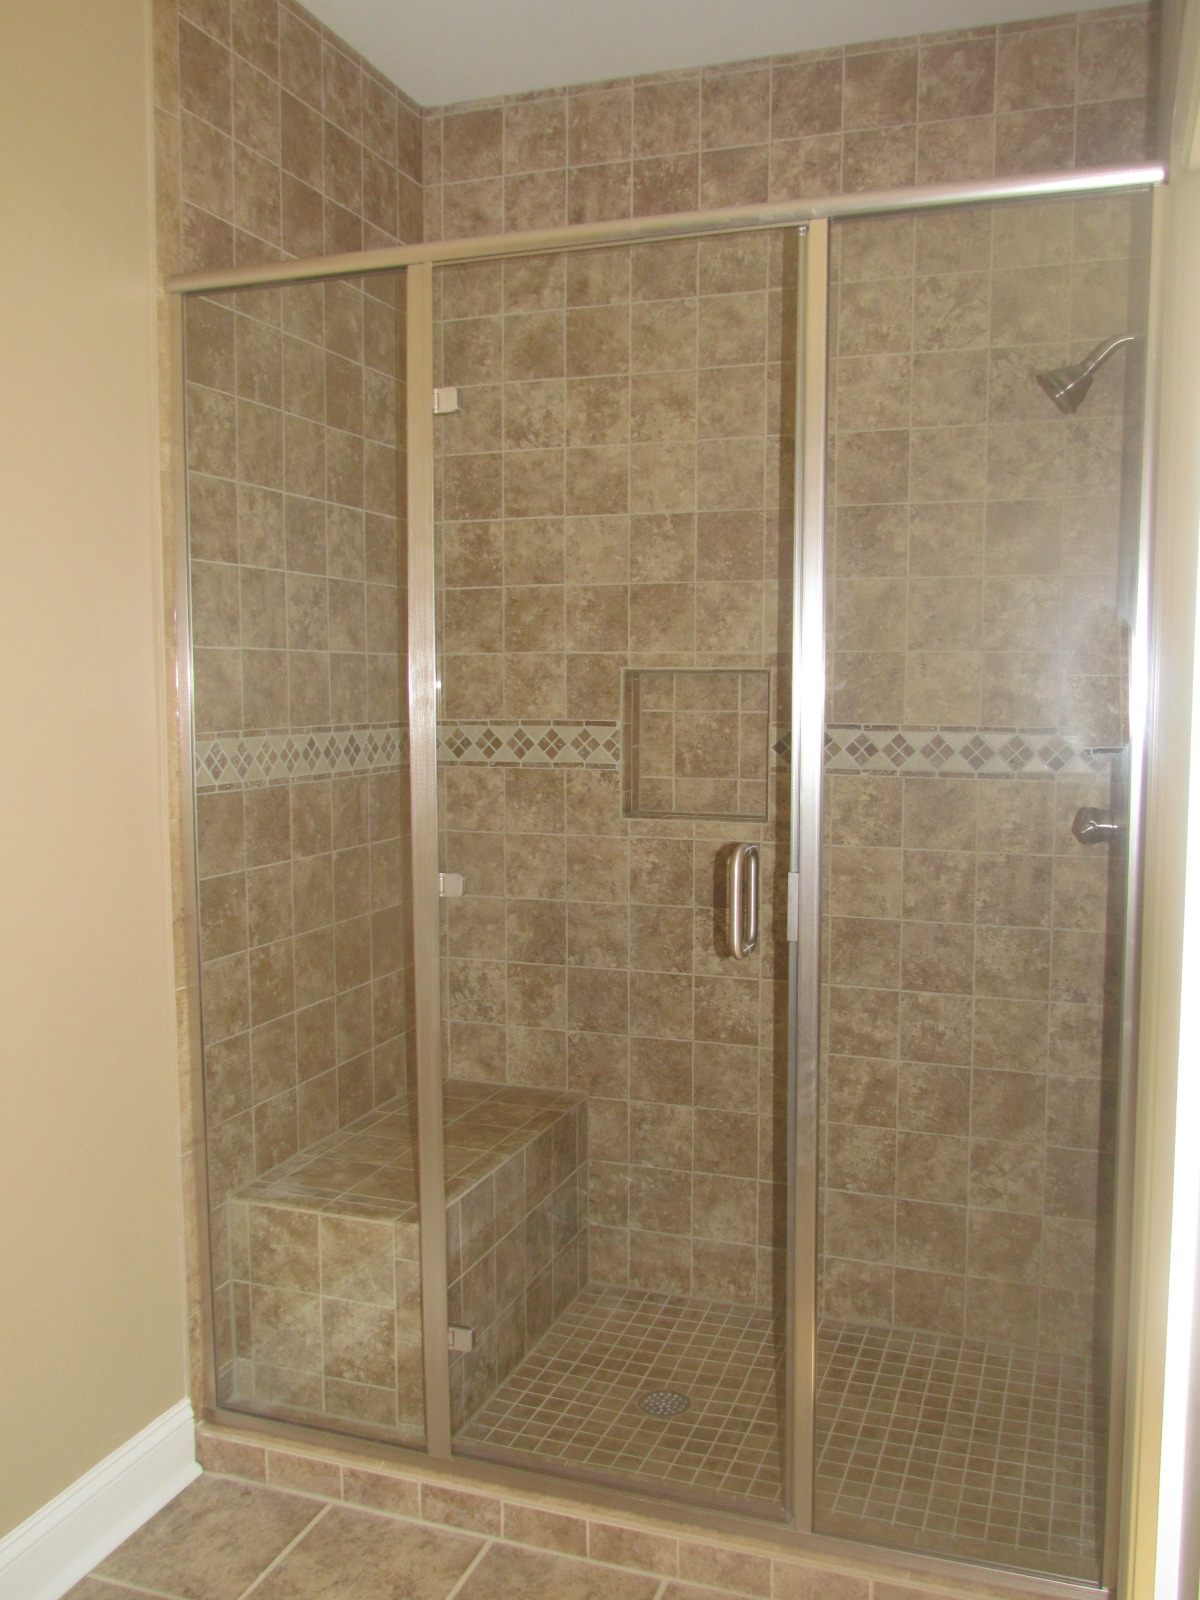 30 cool pictures of tiled showers with glass doors esign